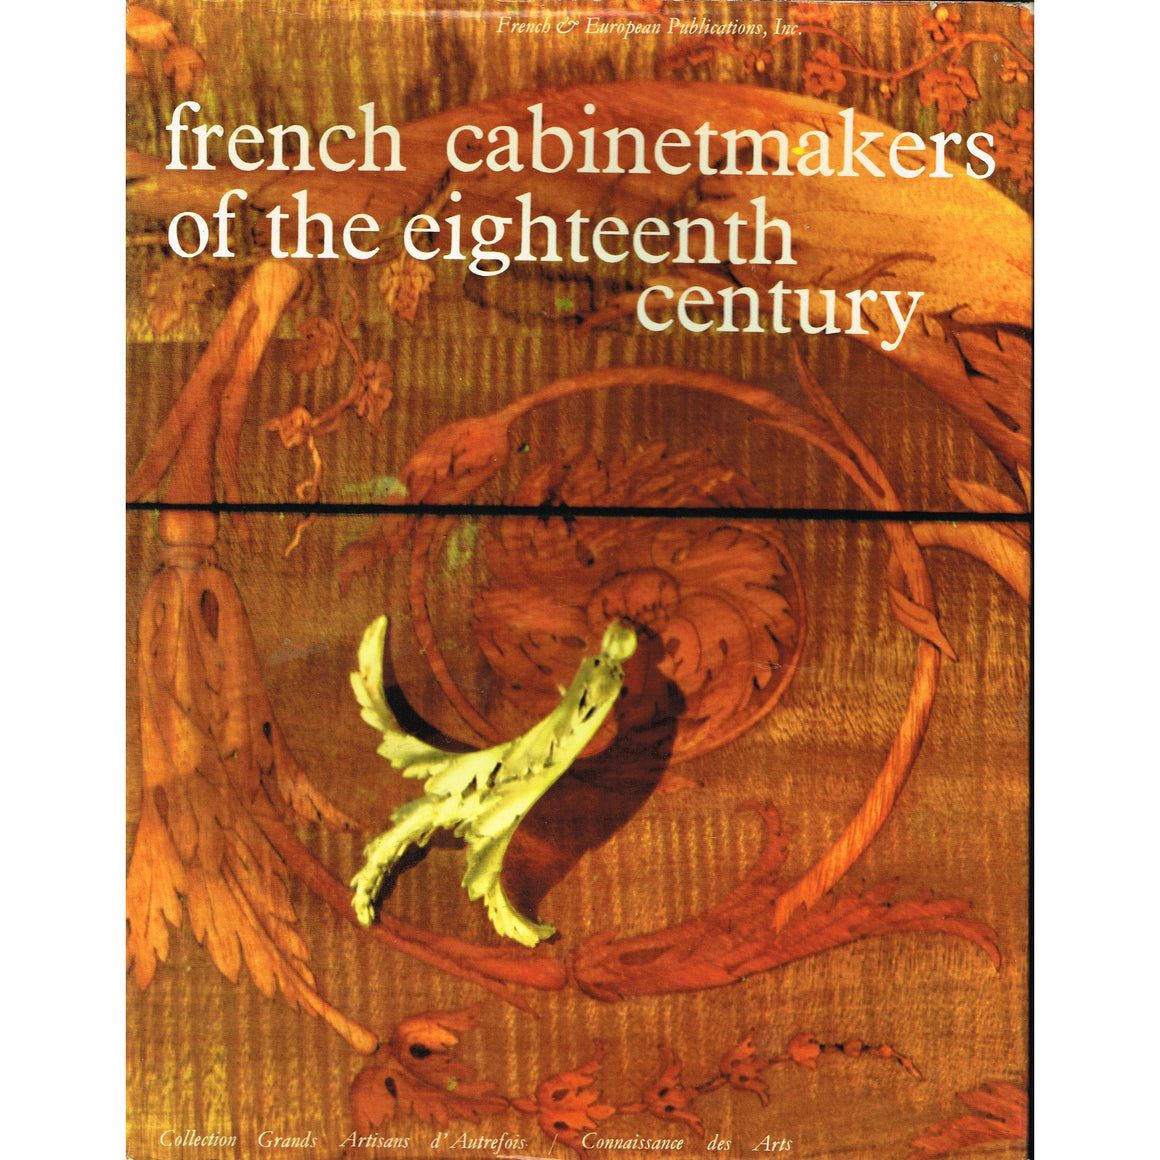 french cabinetmakers of the eighteenth century